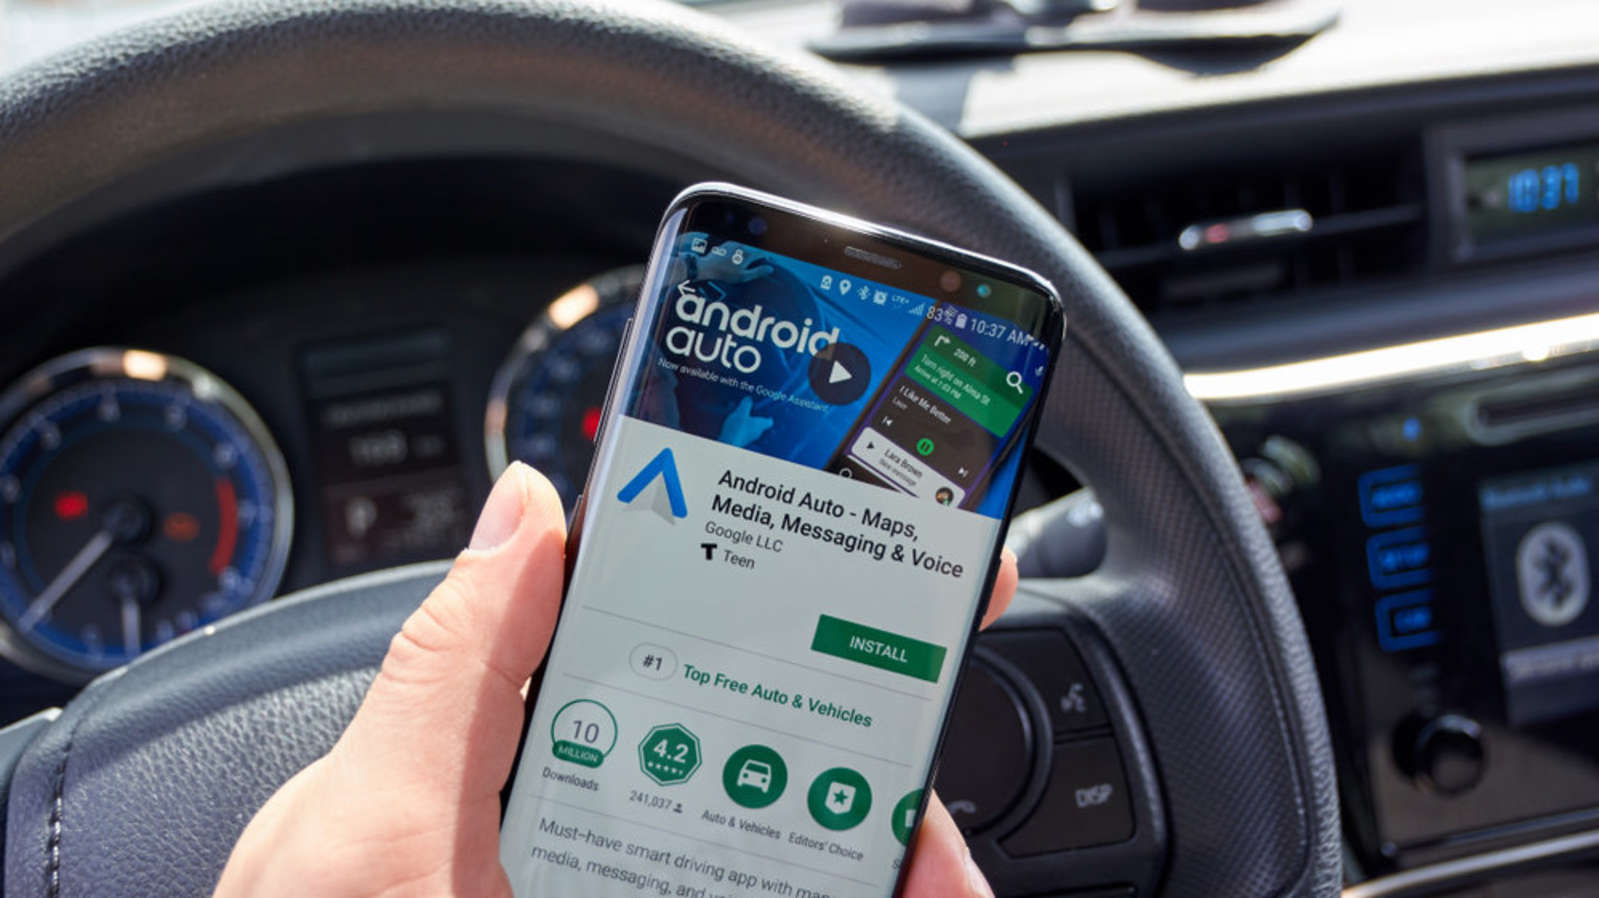 What to Do If You Can't Make Android Auto Calls